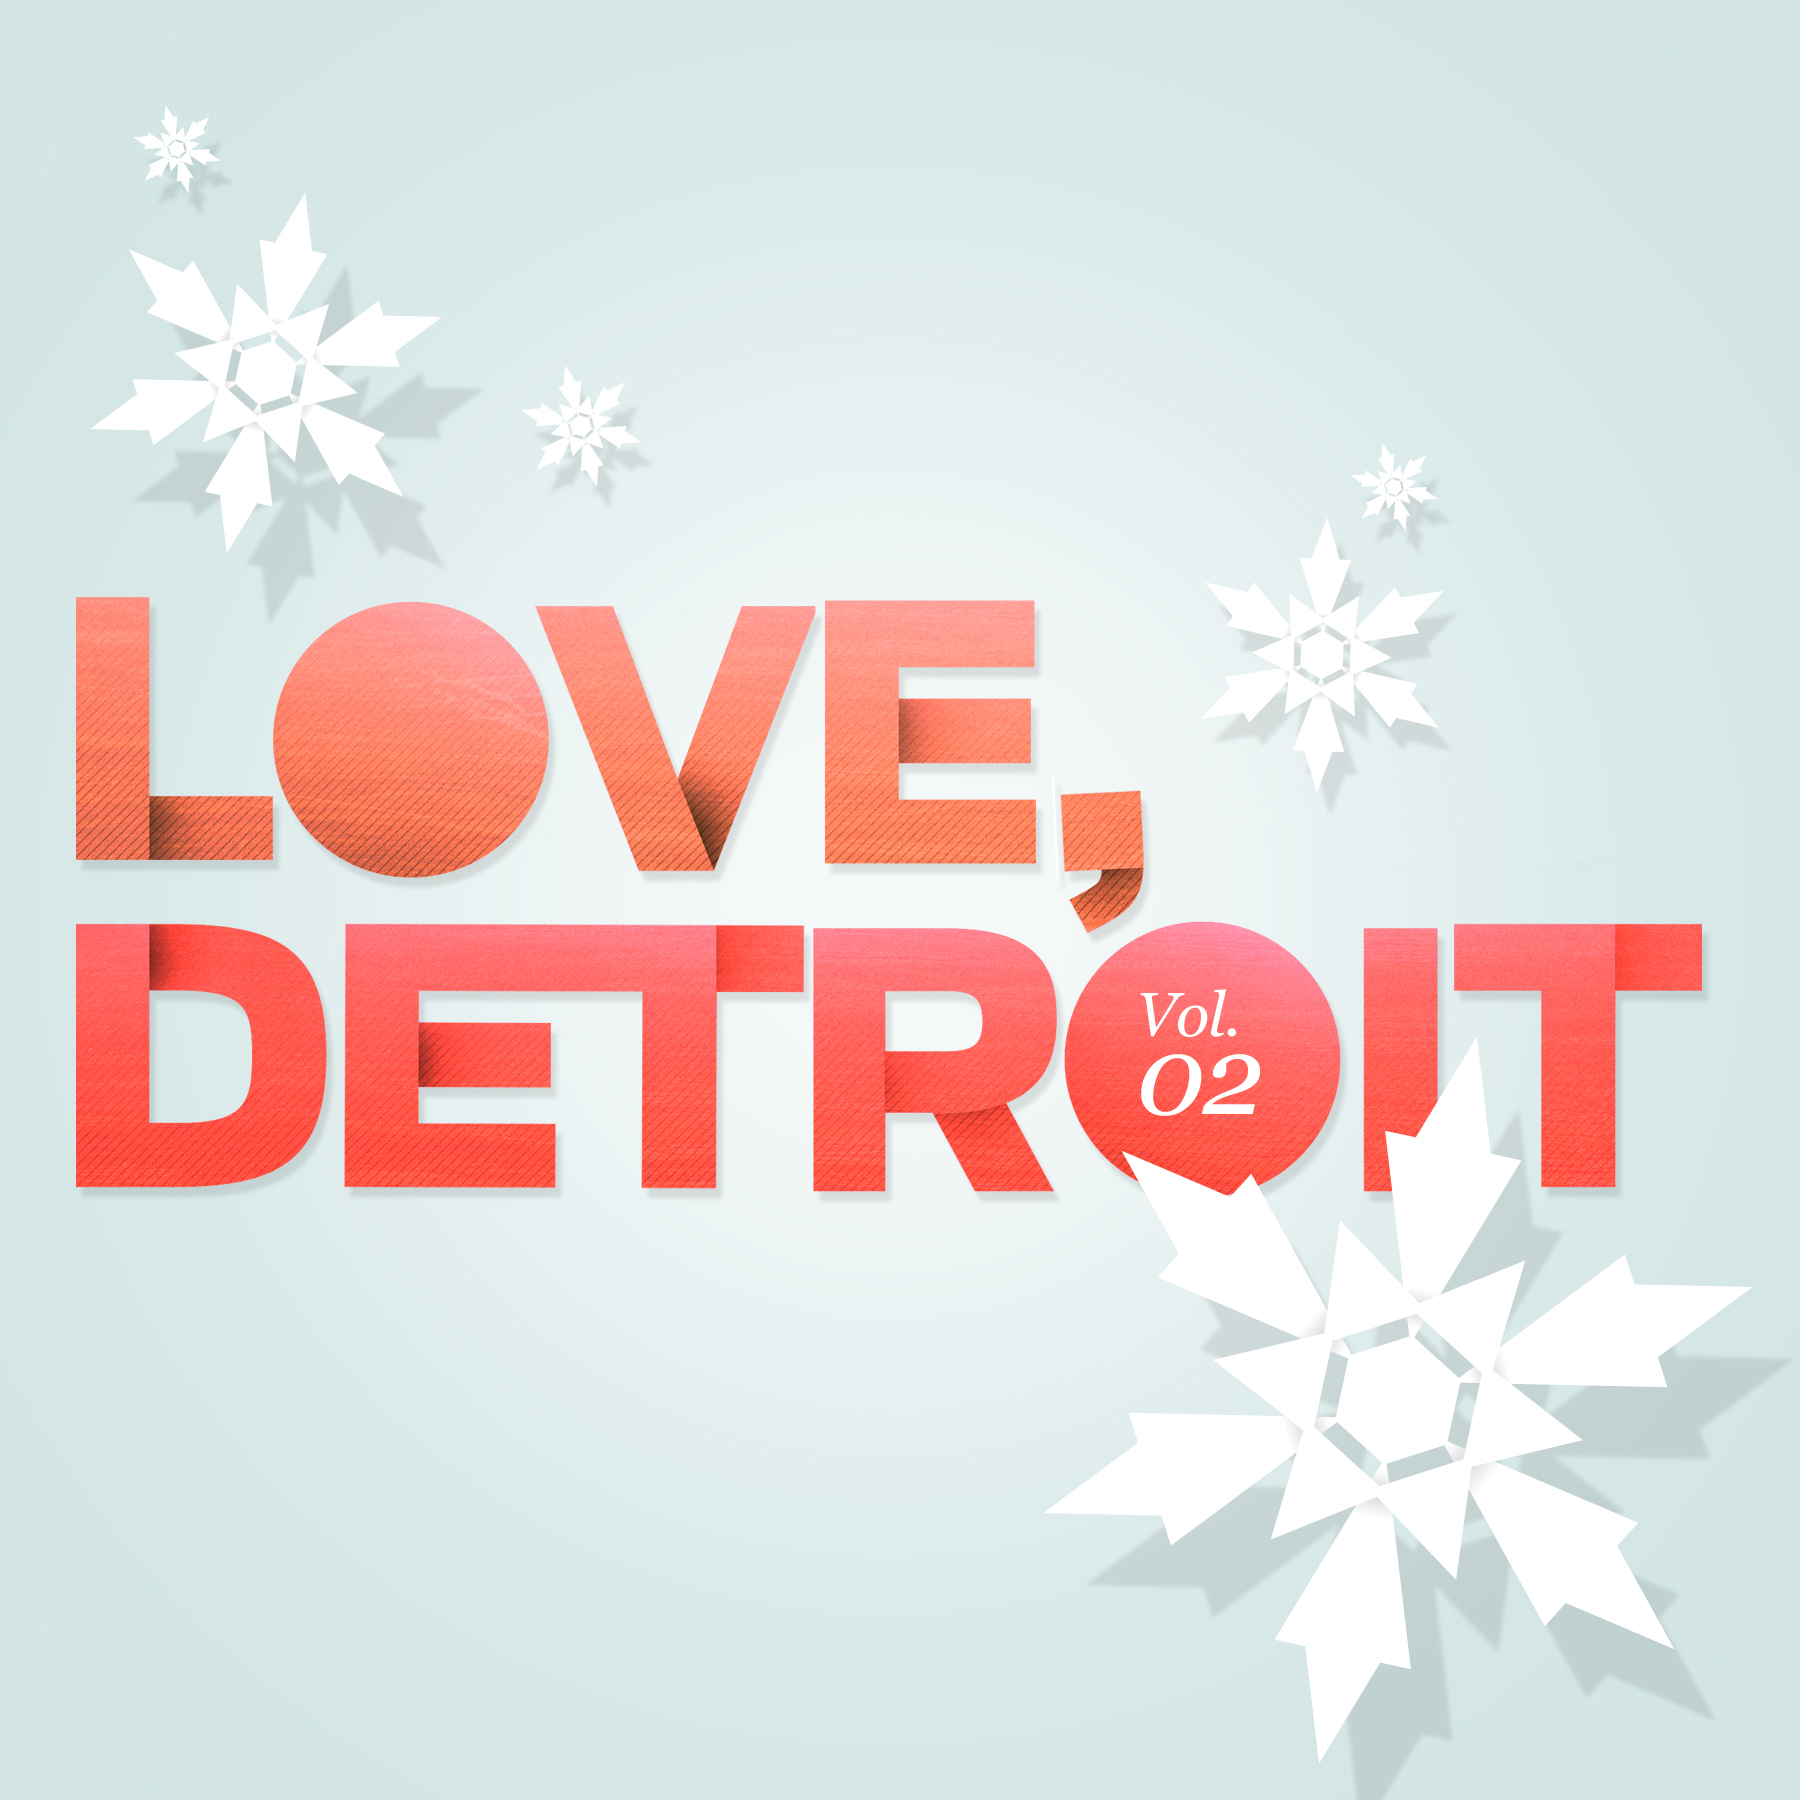 Love, Detroit Vol. 02